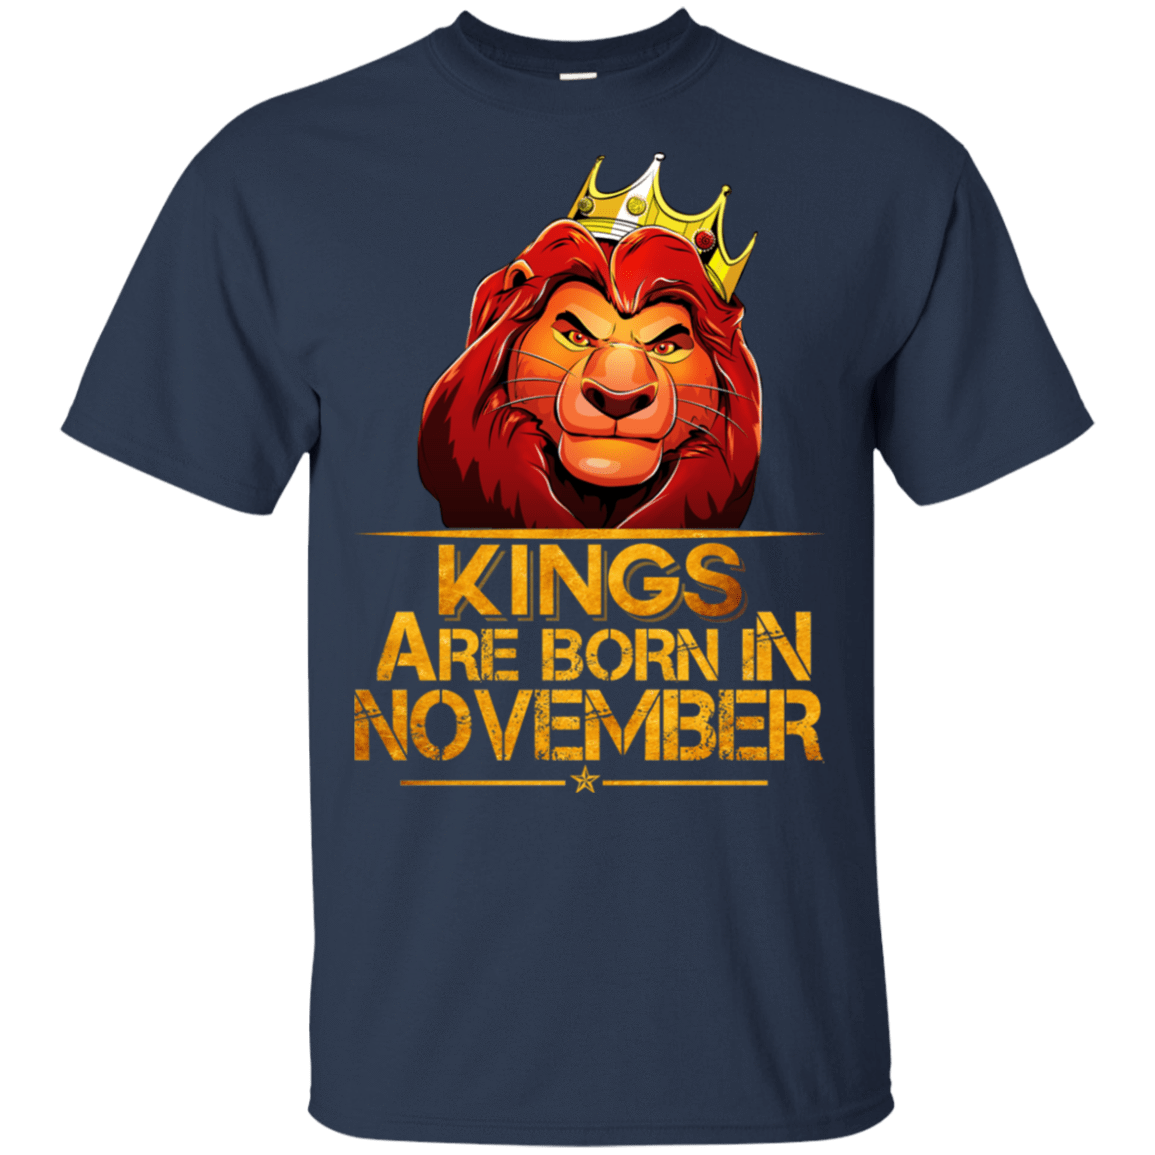 Lion Kings Are Born In November Shirt, Hoodie, Tank 22-111-77860618-250 - Tee Ript